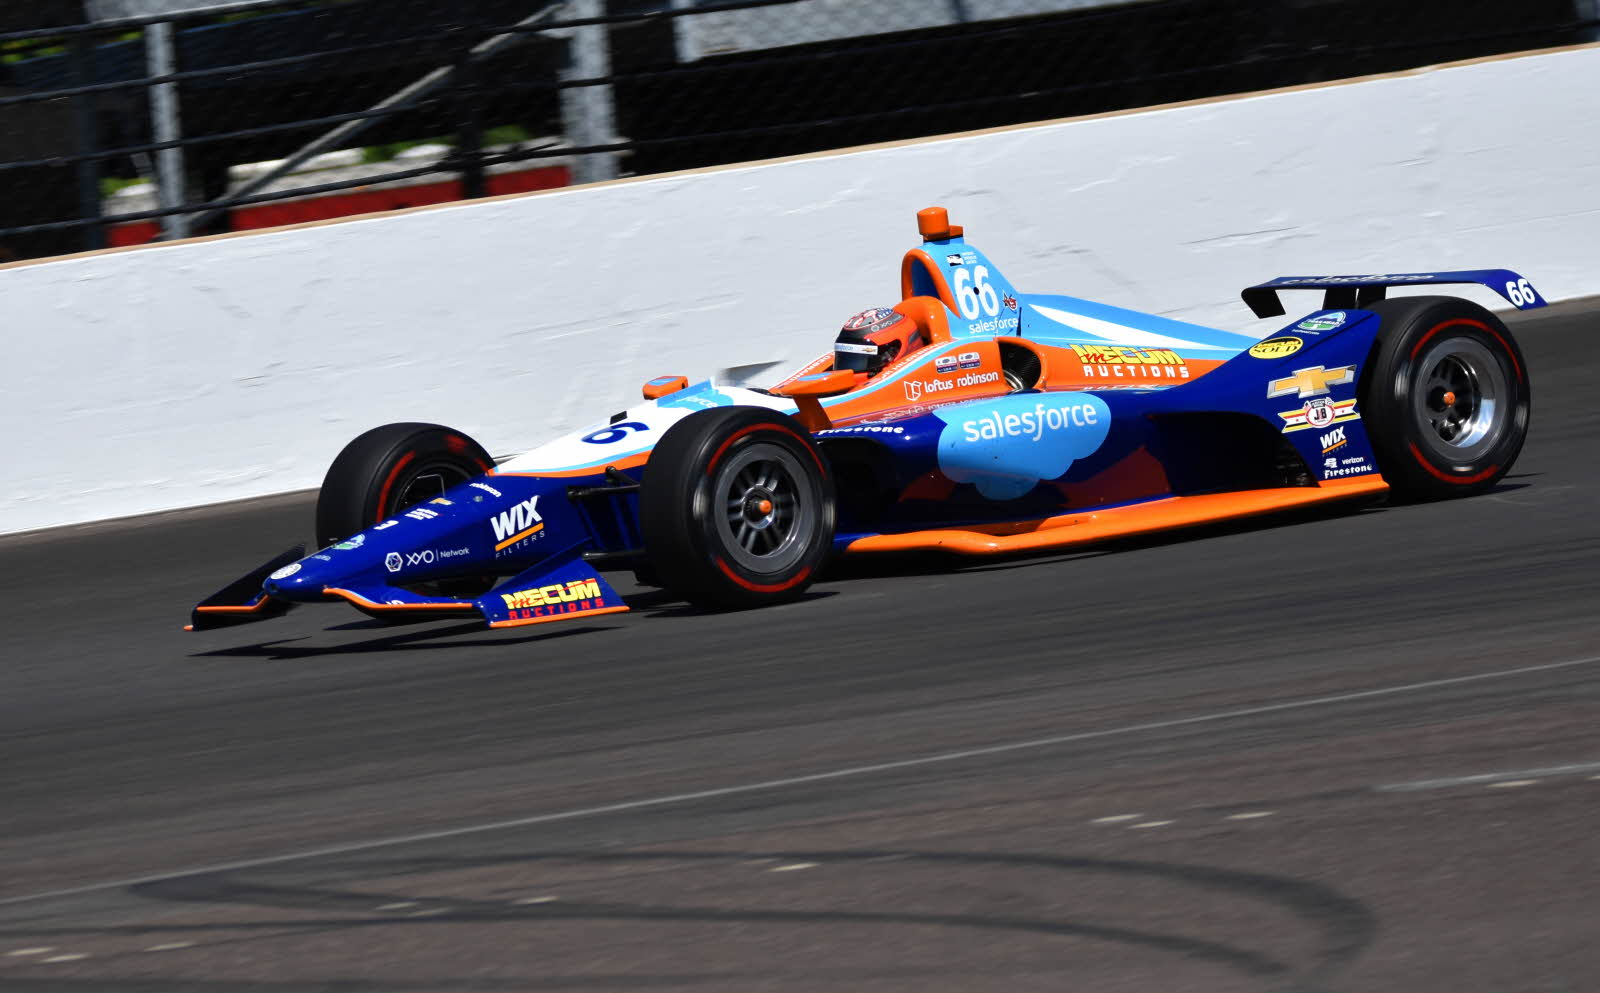 JR Hildebrand. [John Wiedemann Photo]